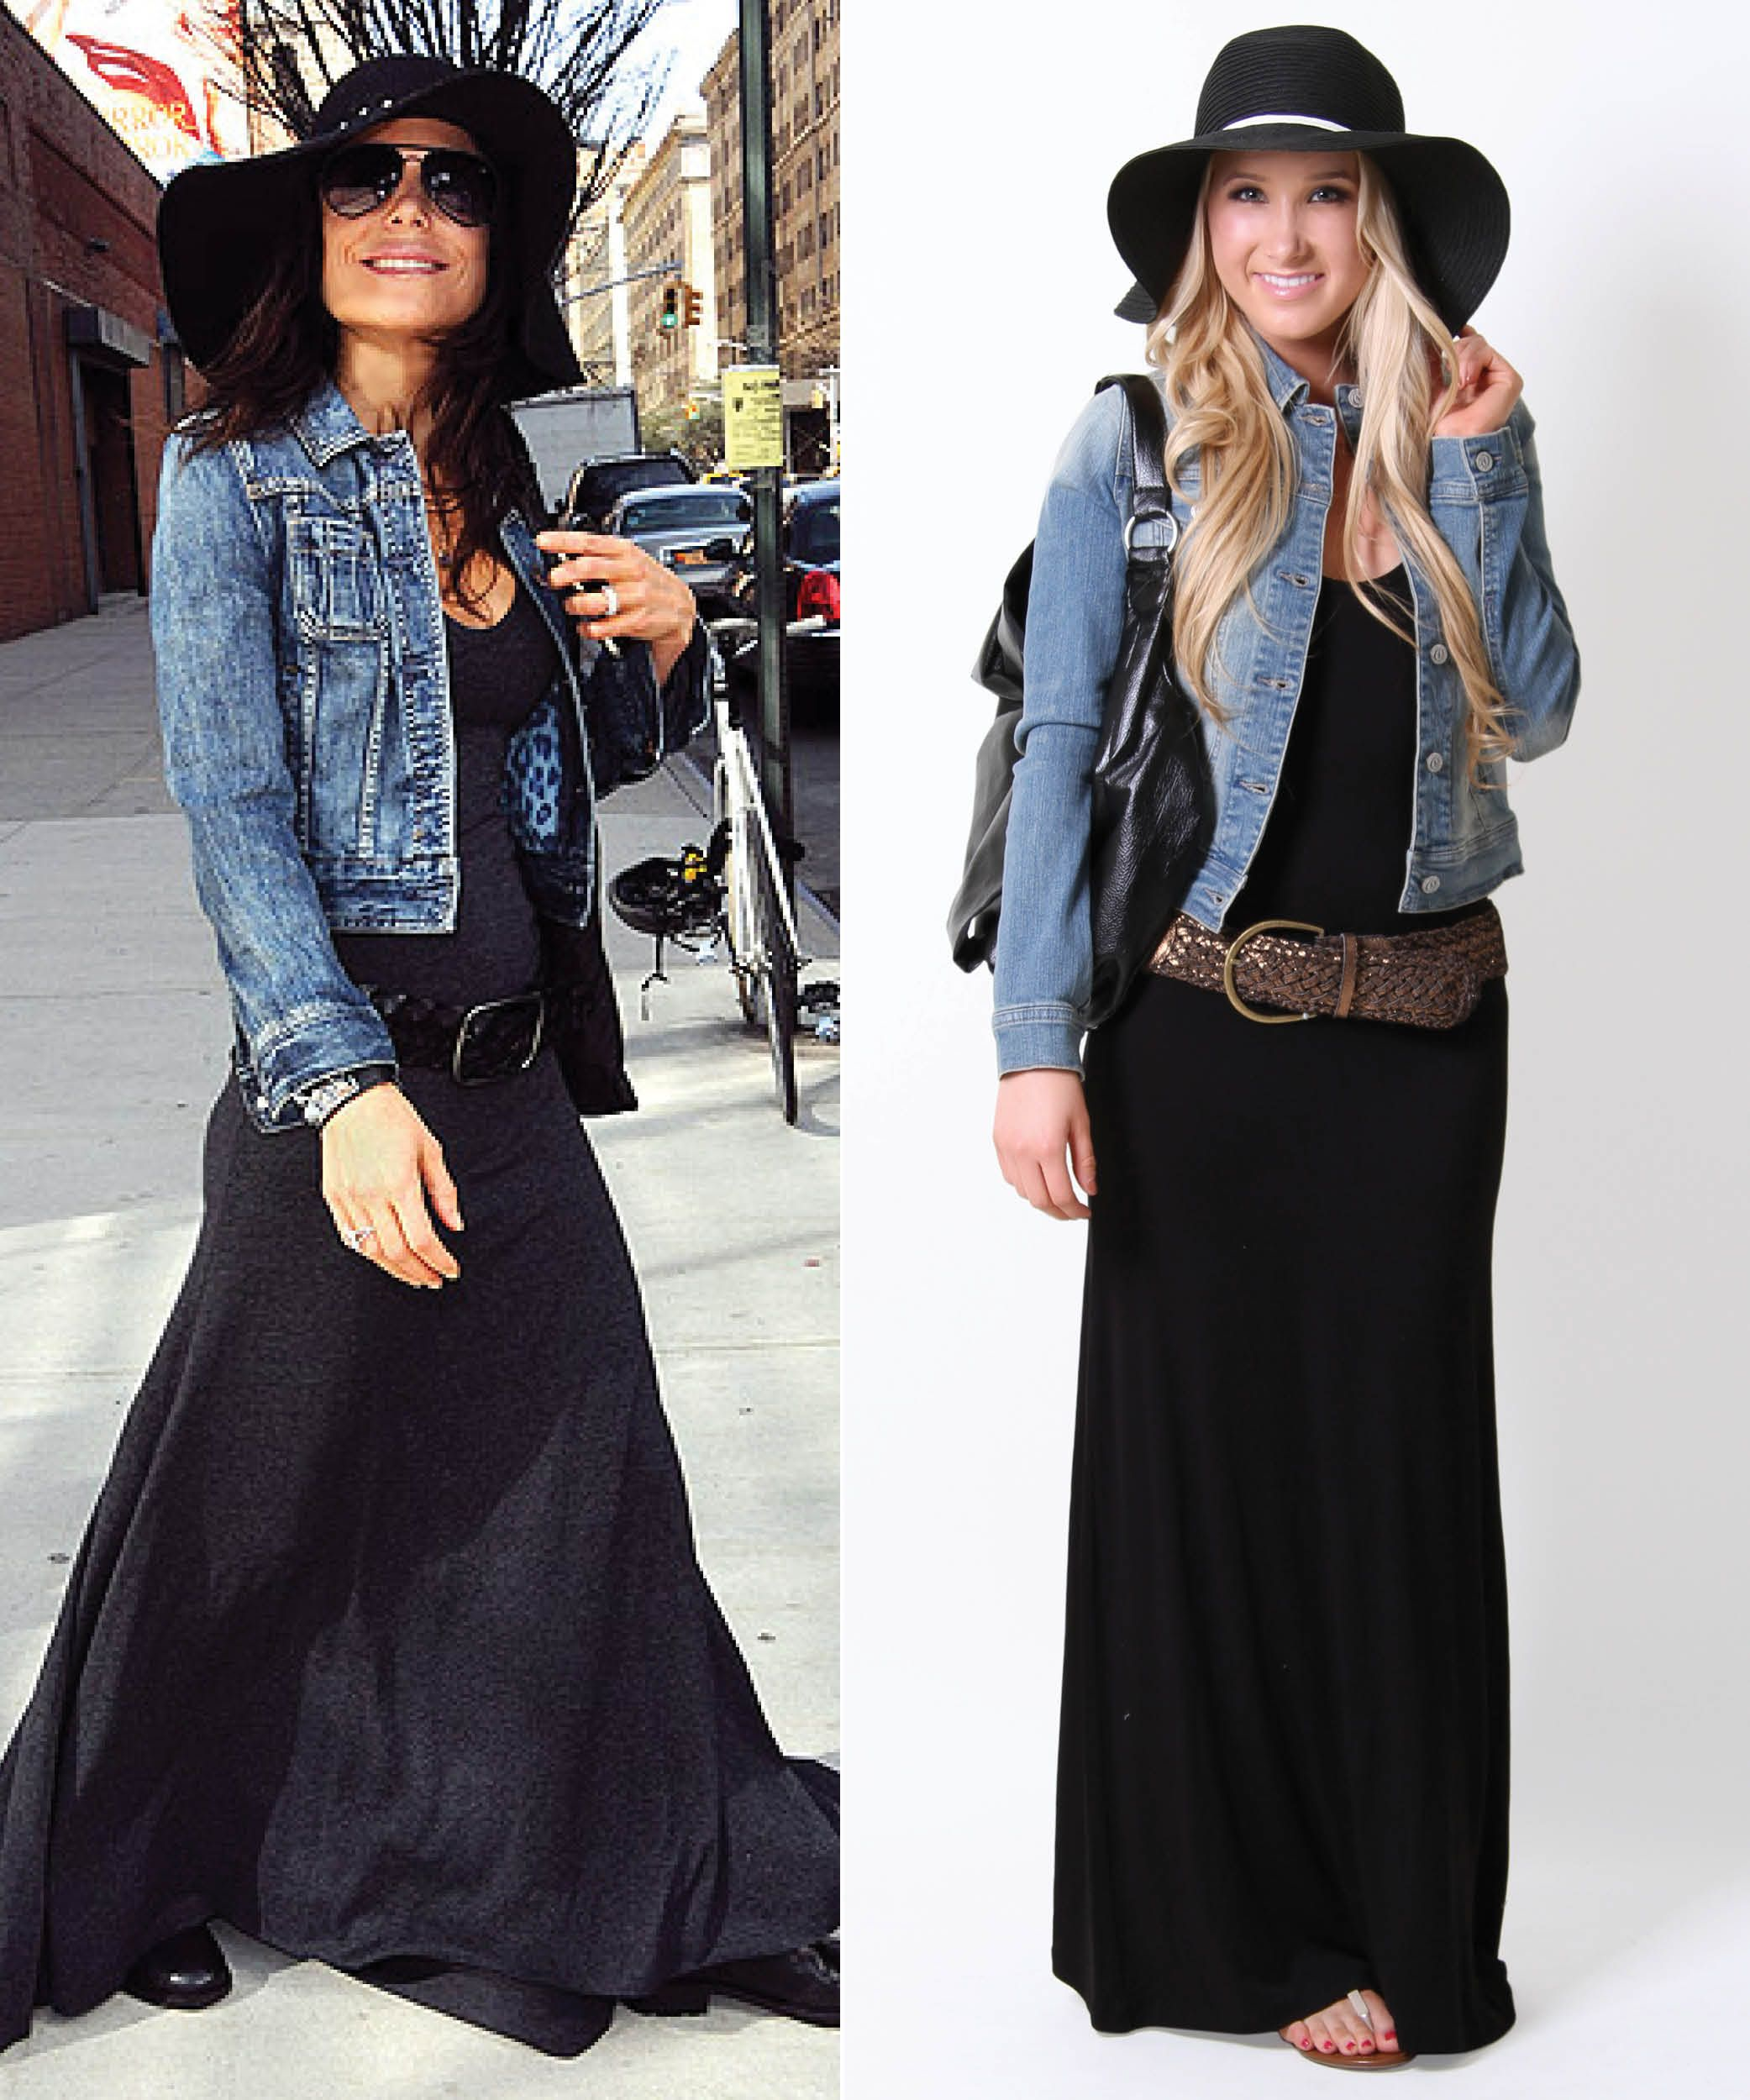 Black dress jean jacket - Add A Denim Jacket Hat To Your Maxi Dress For An Instant Chic Look